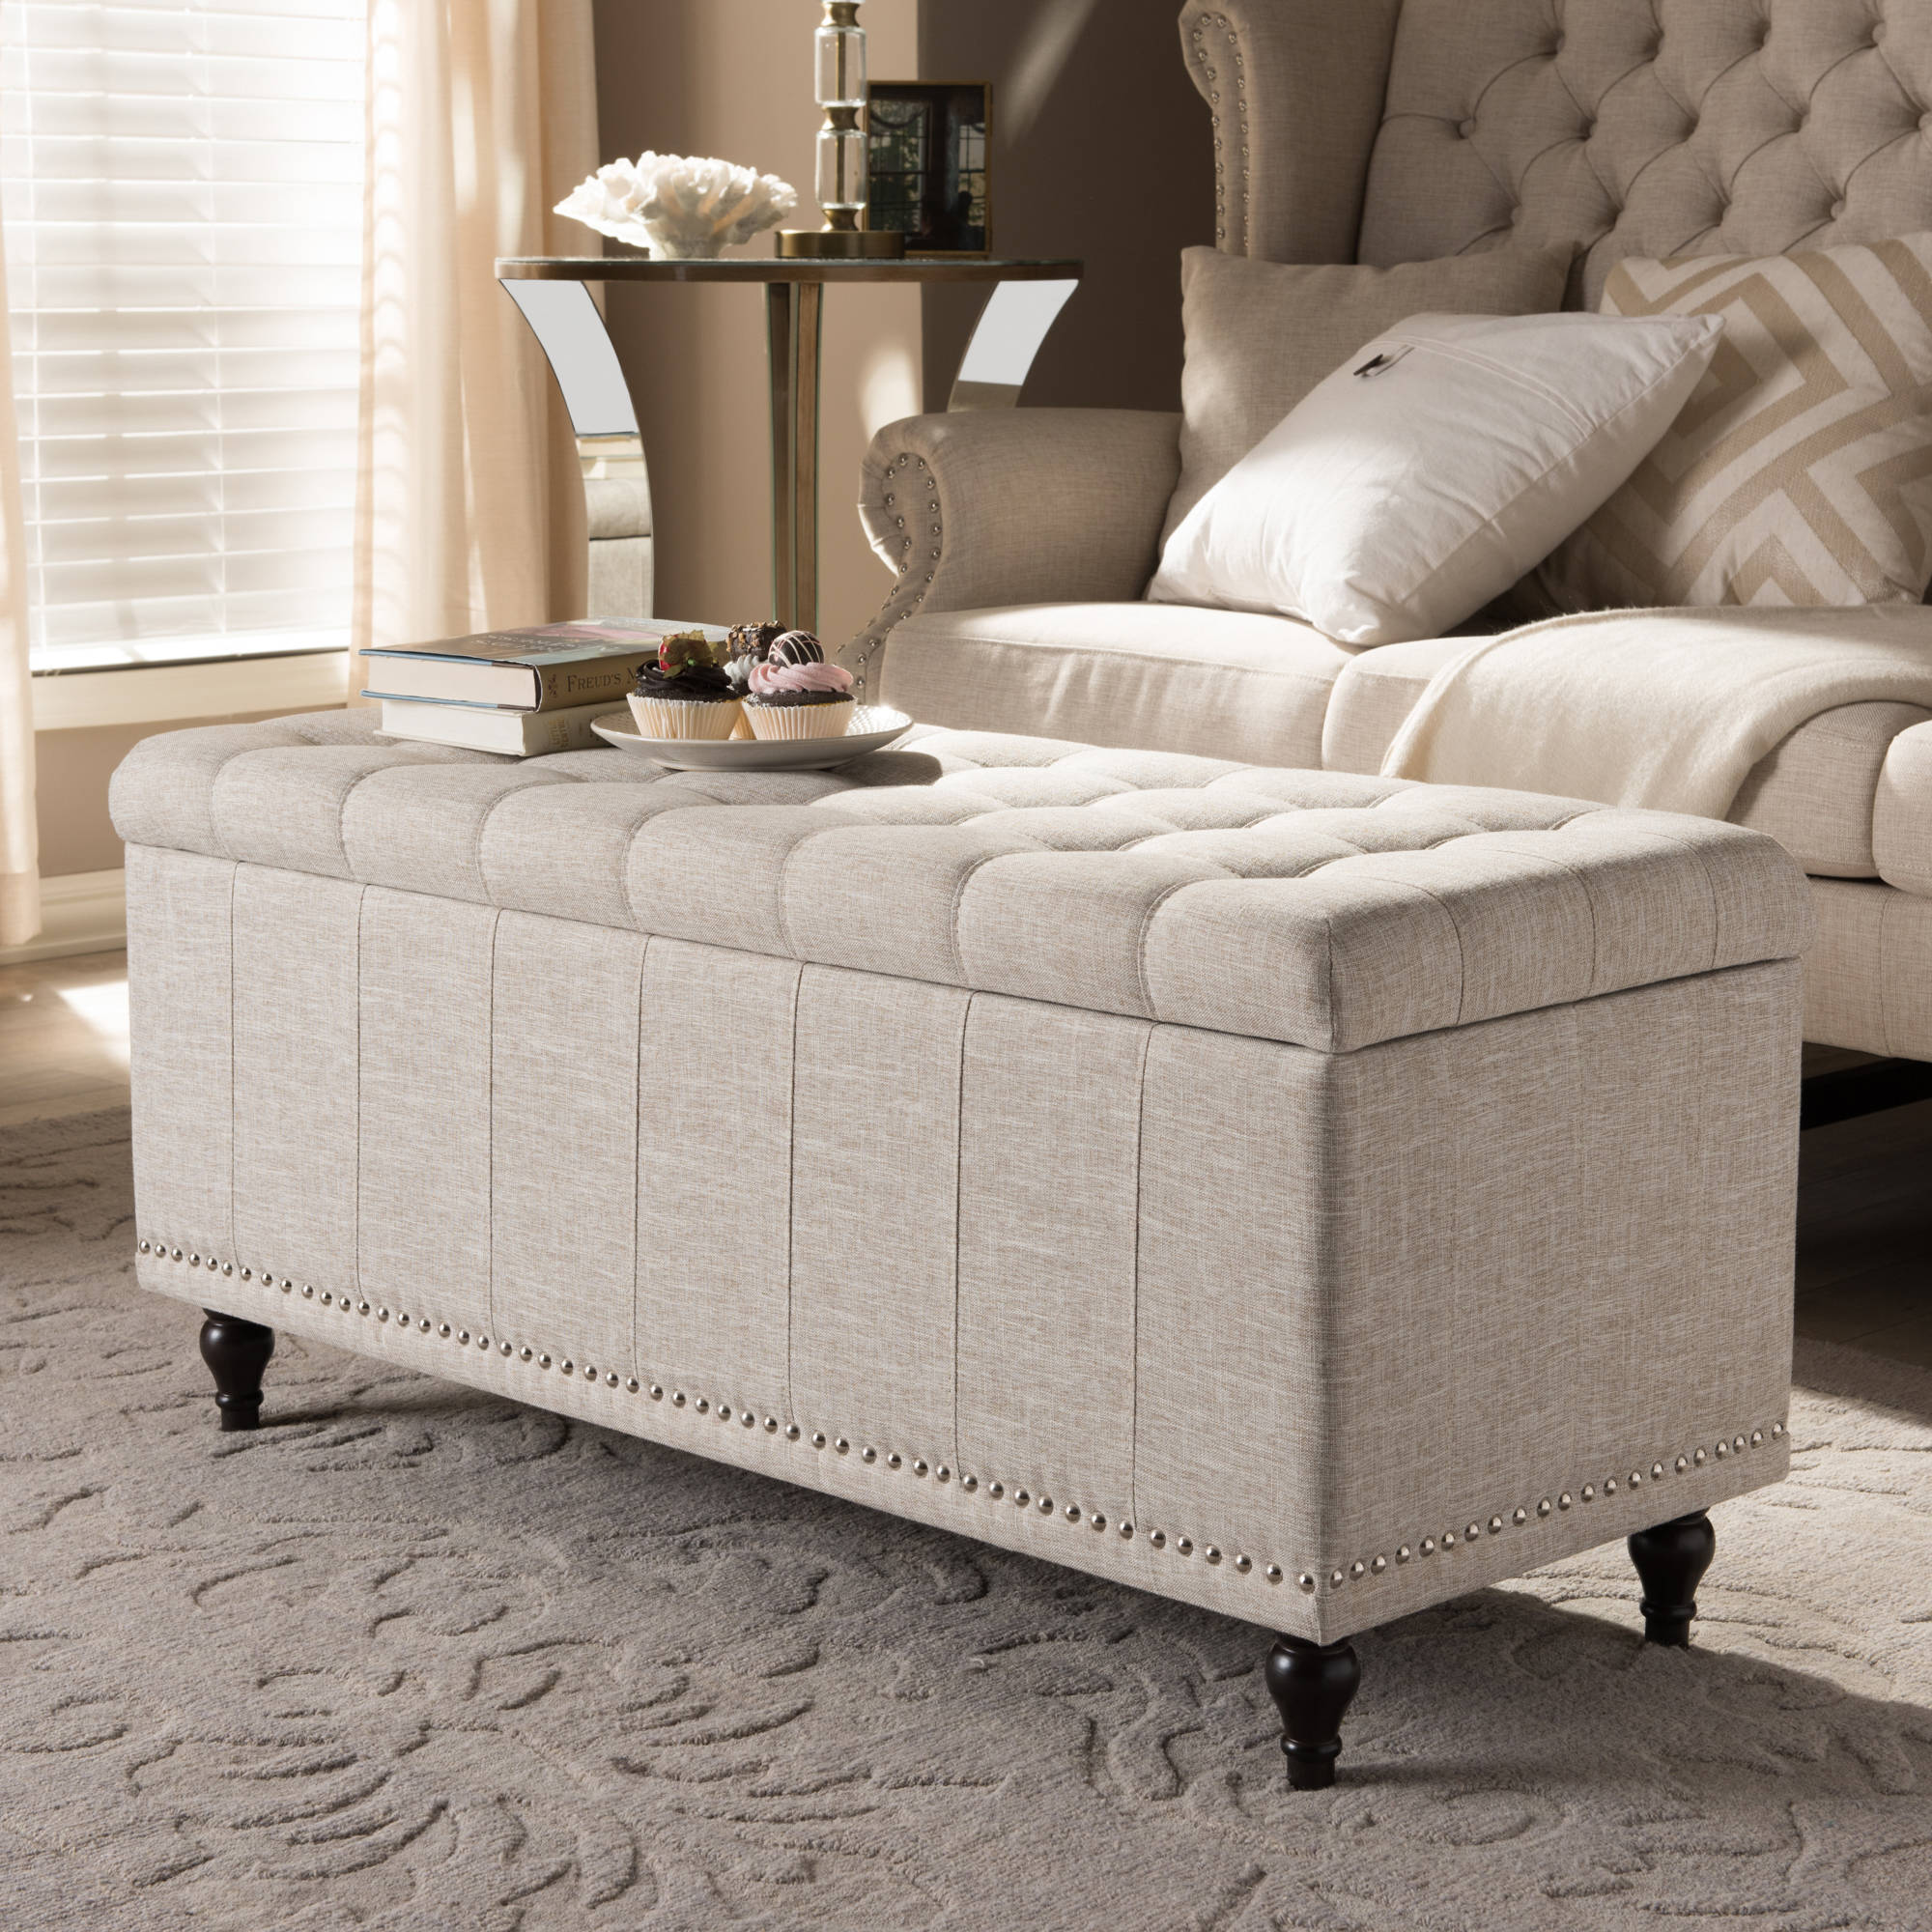 Incredible Baxton Studio Kaylee Modern Classic Beige Fabric Upholstered Button Tufting Storage Ottoman Bench Gmtry Best Dining Table And Chair Ideas Images Gmtryco